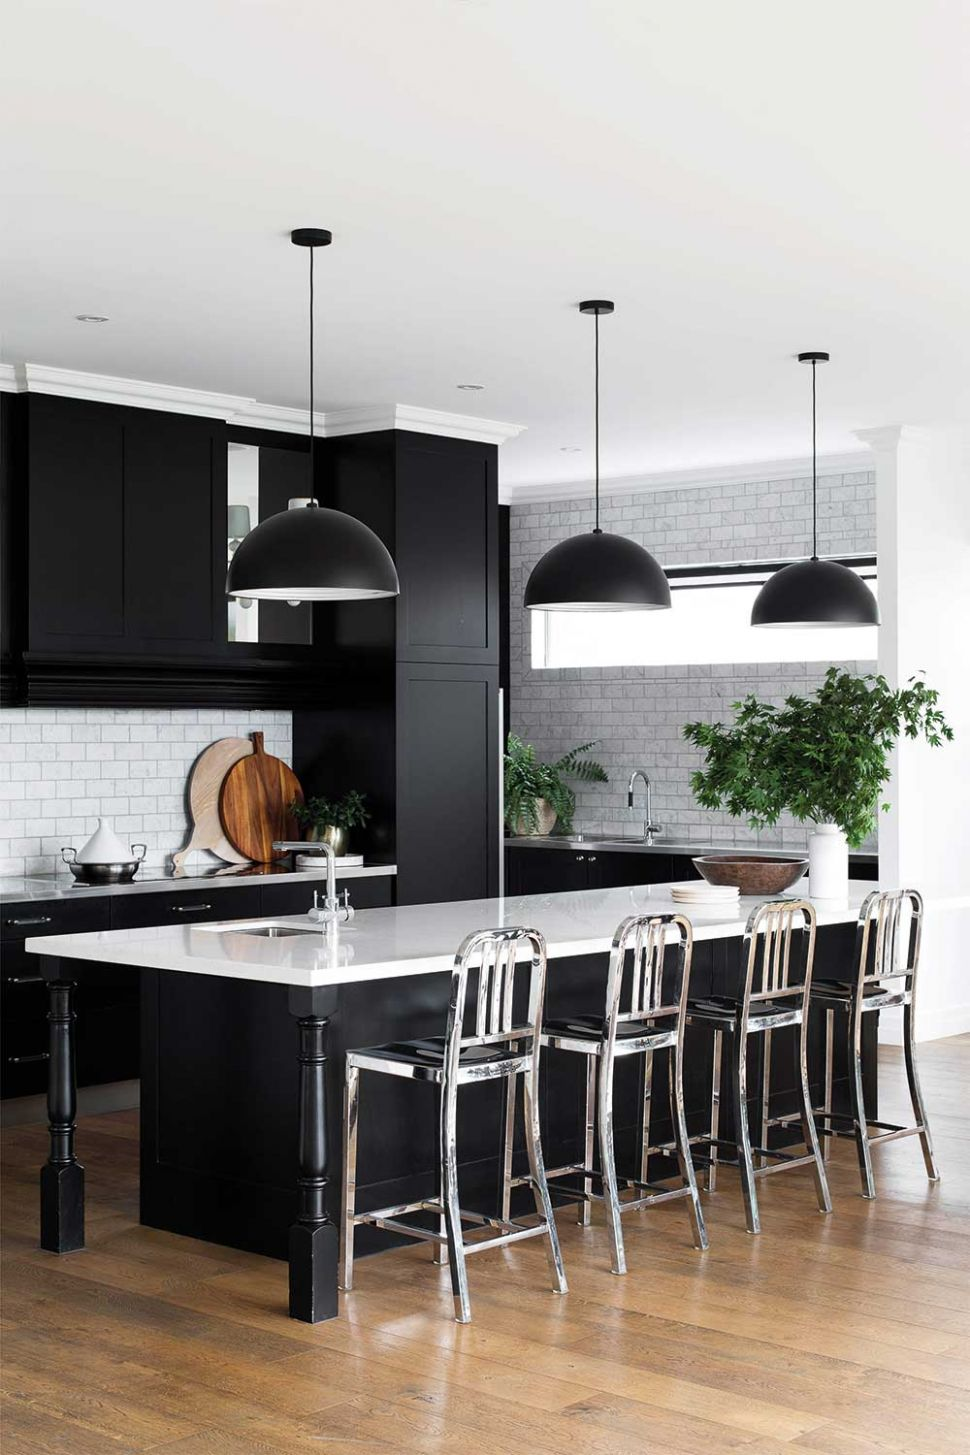 12 great ideas for a black and white kitchen | Home Beautiful ...